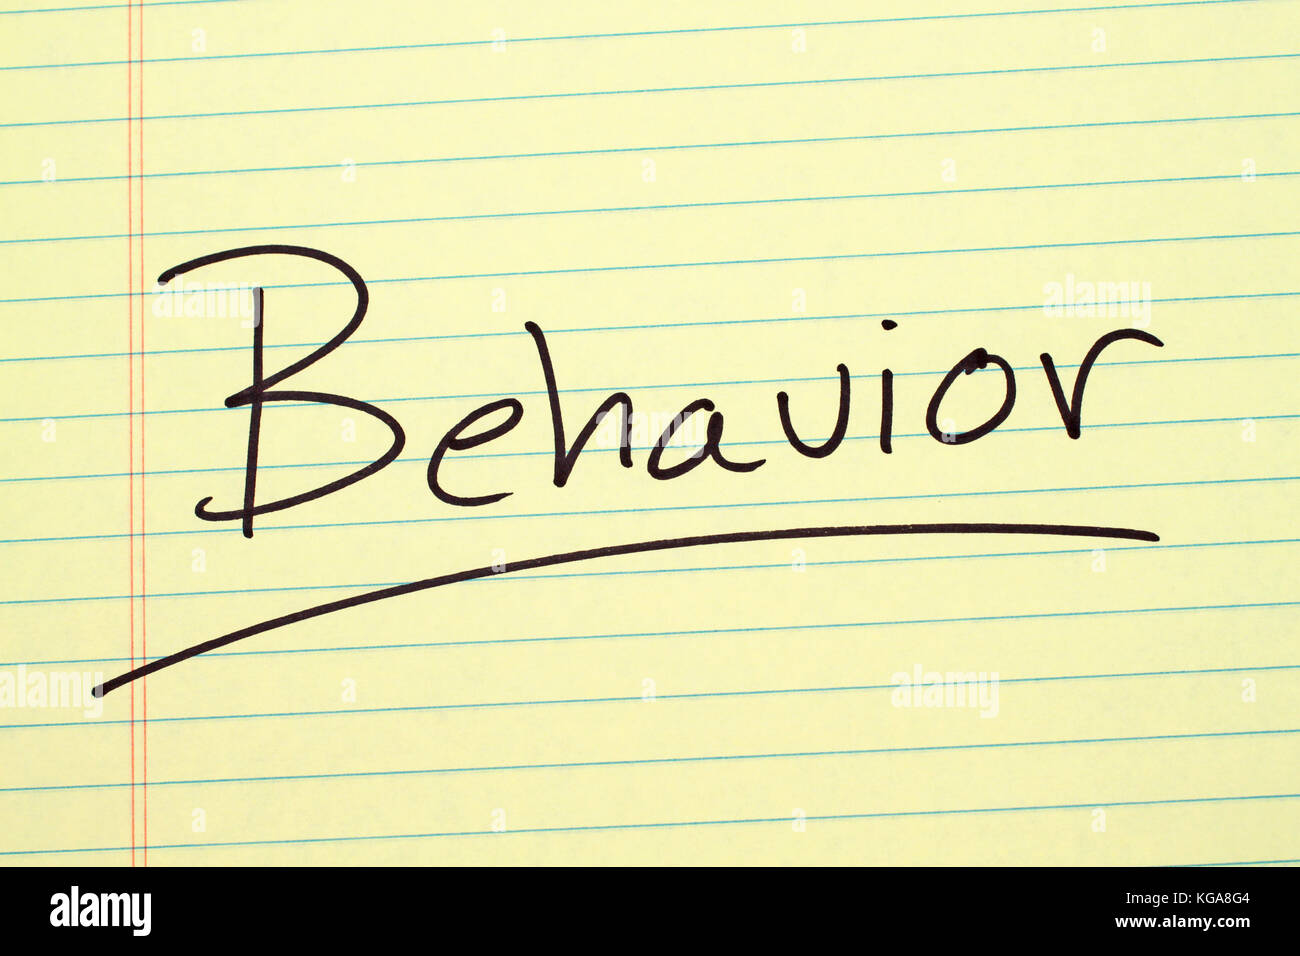 The word 'Behavior' underlined on a yellow legal pad - Stock Image